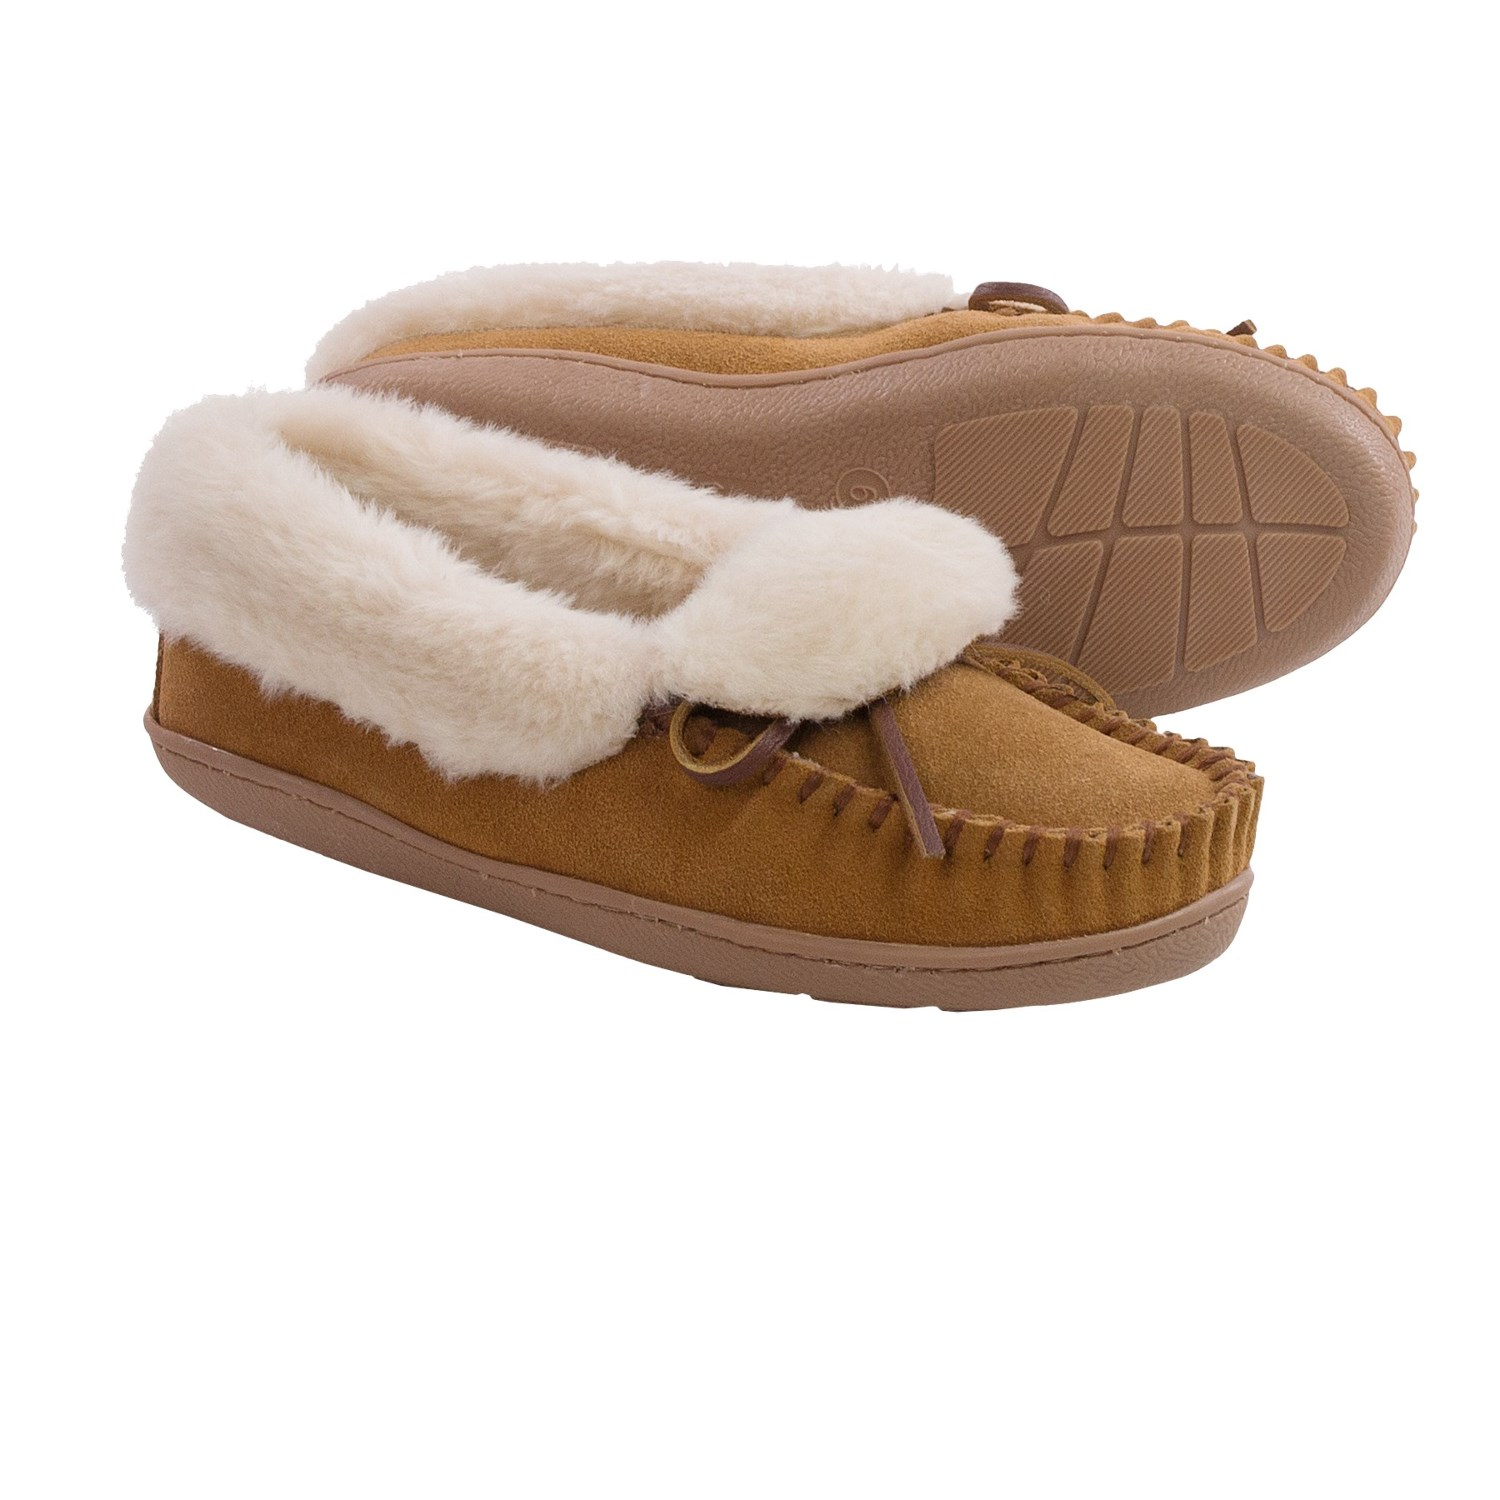 Minnetonka Tracy Folded Trapper Slippers For Women 9390n